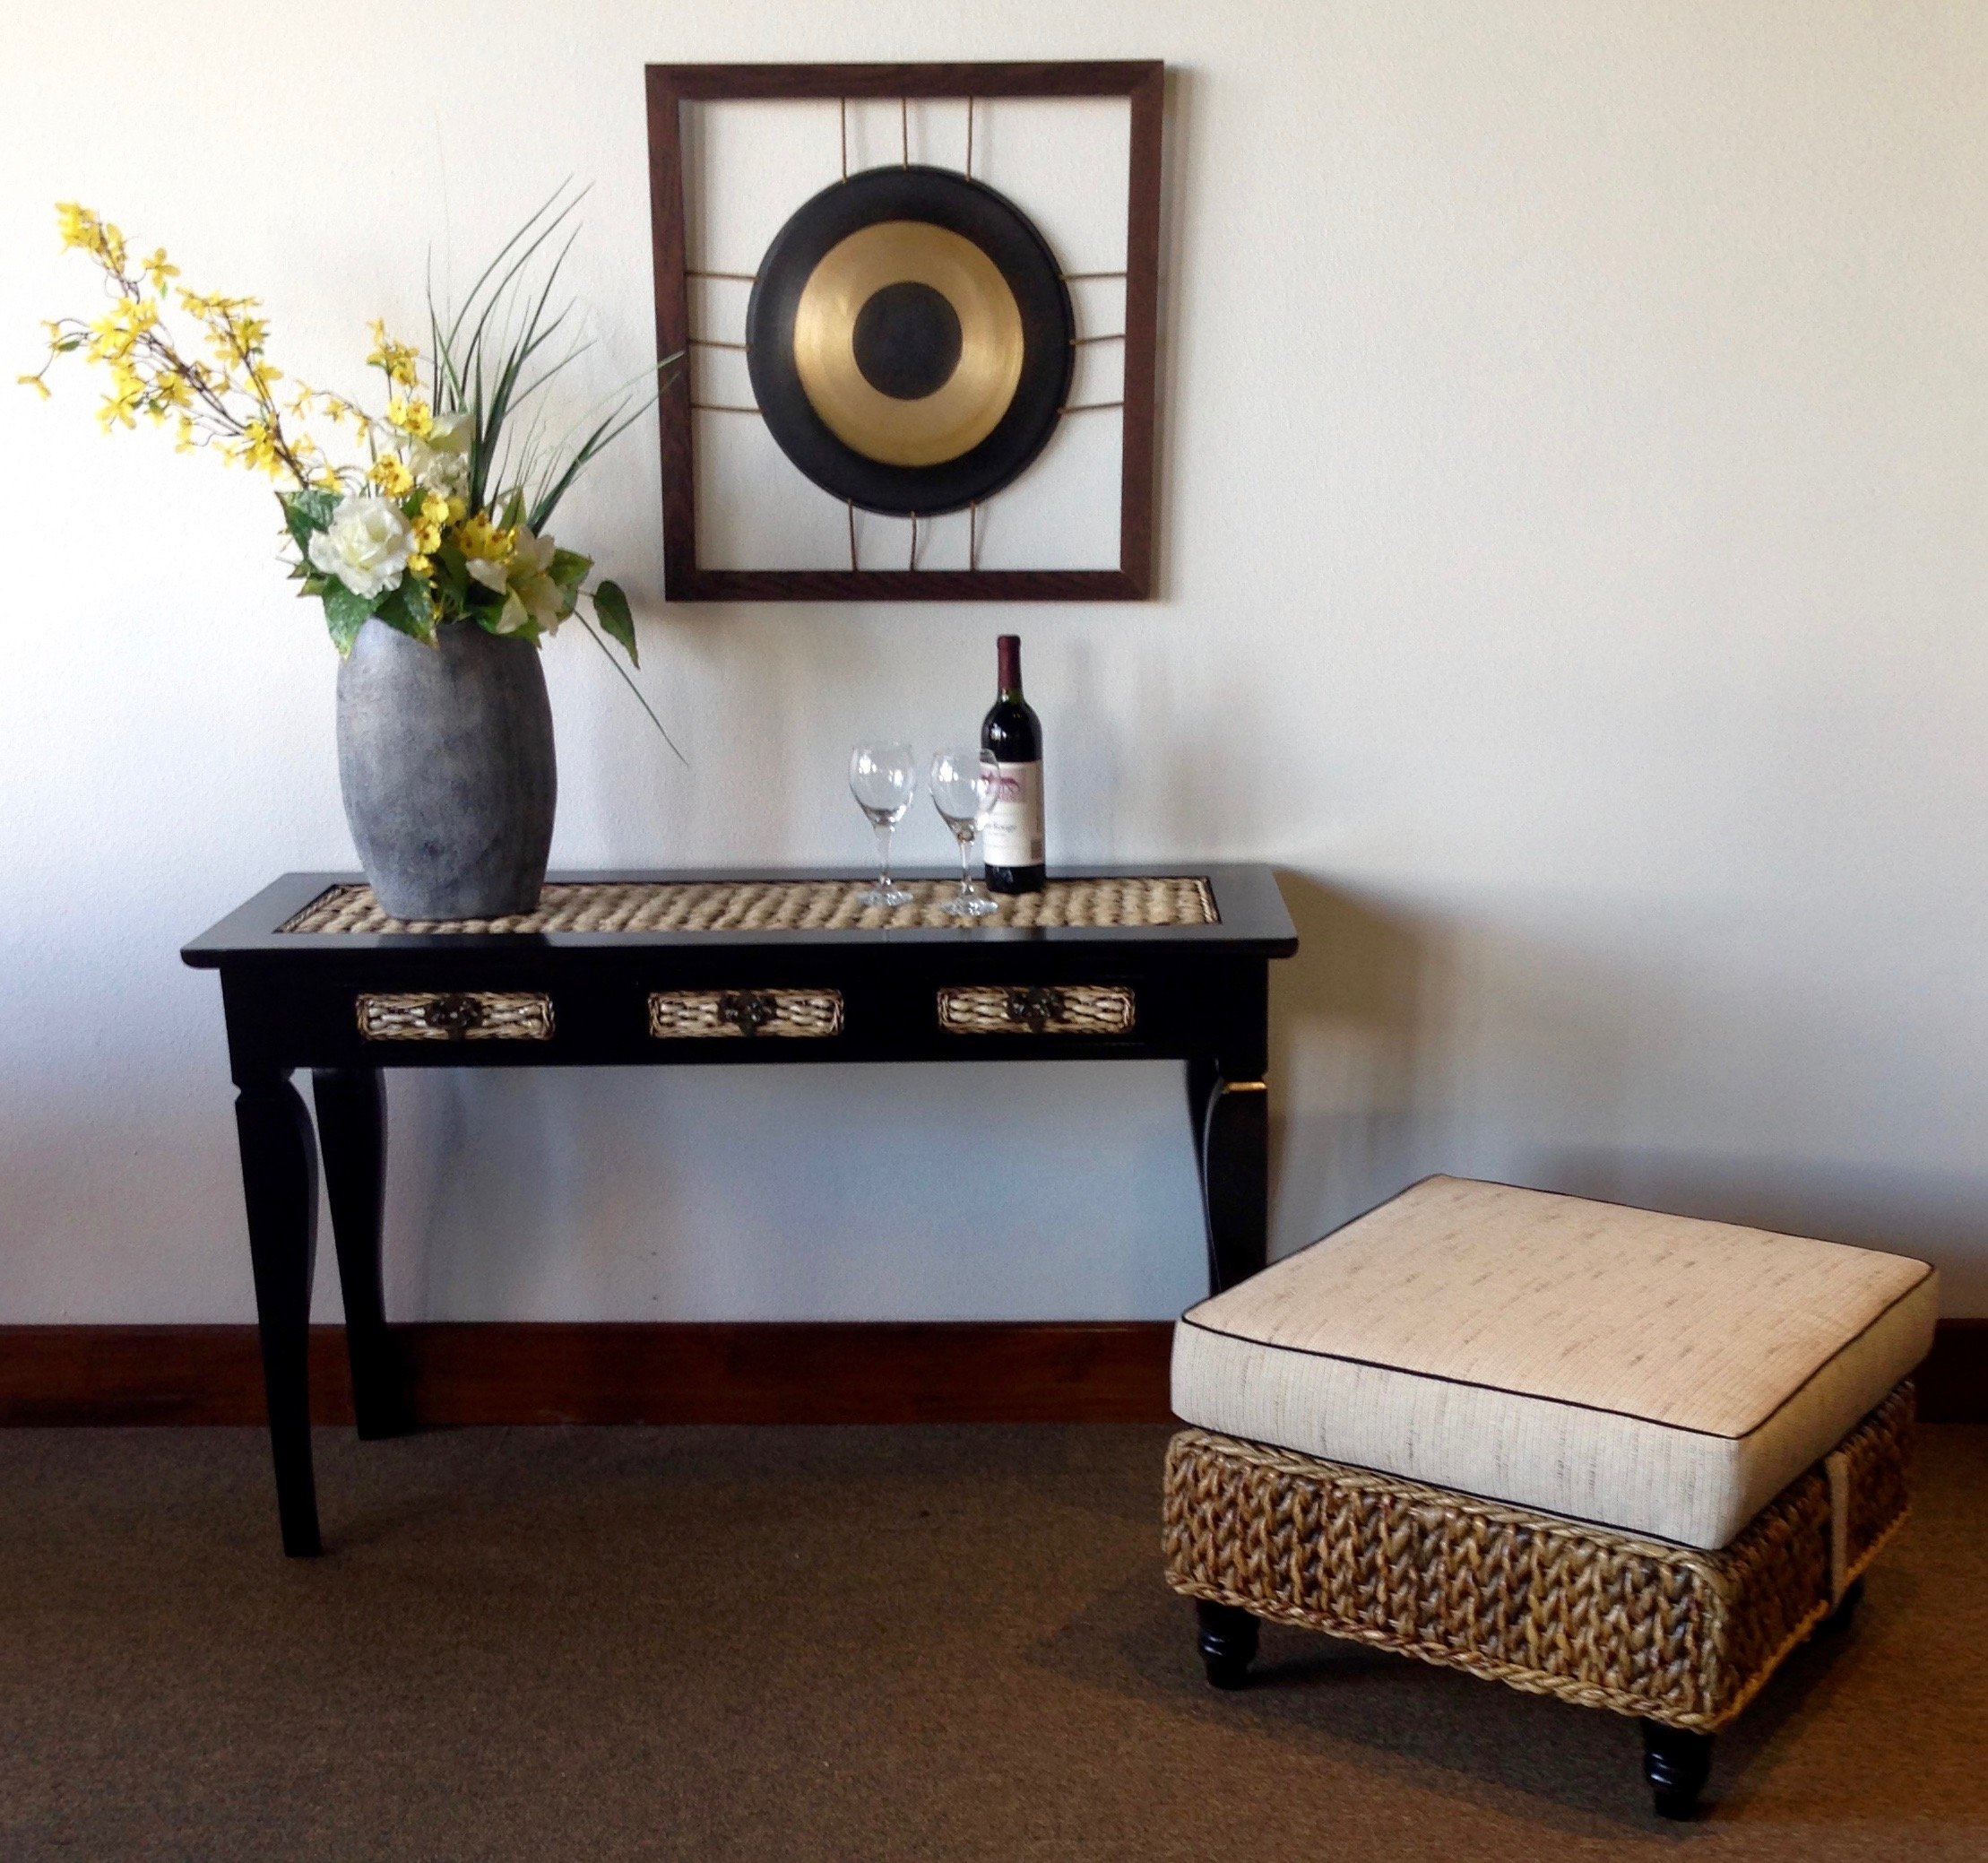 Naples Handwoven Abaca Ottoman Made By Chic Teak